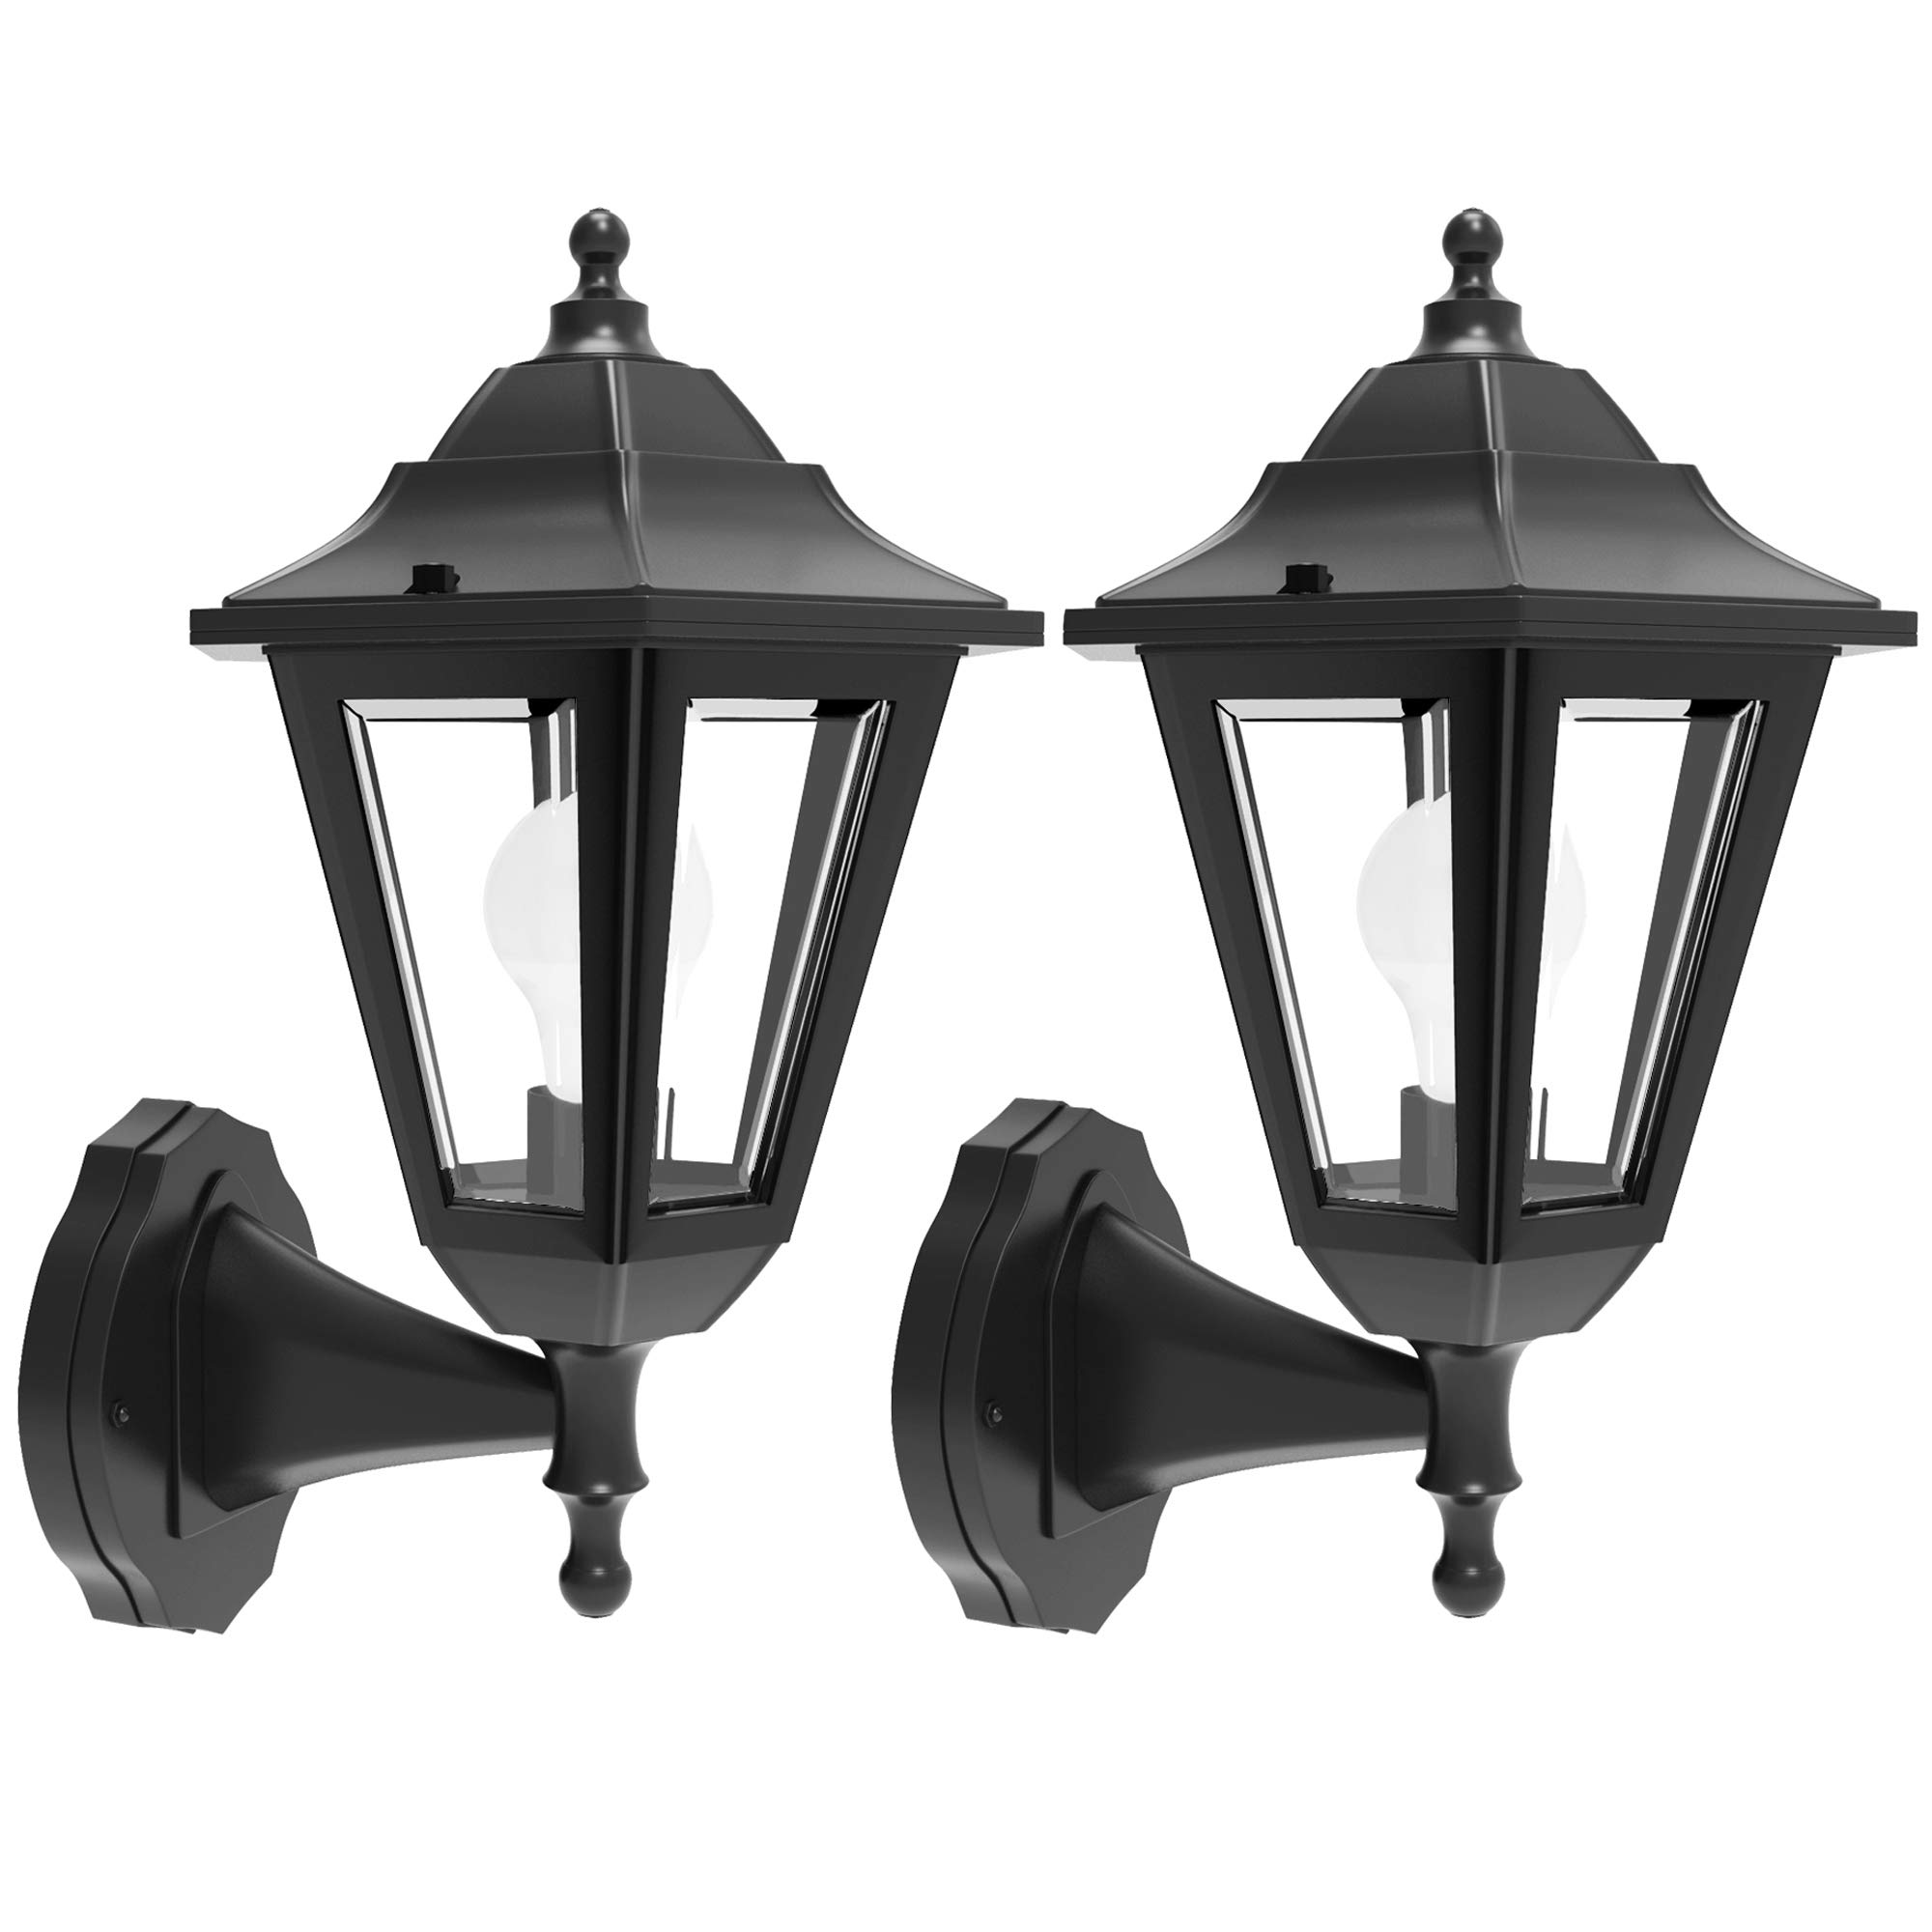 Details about emart porch light fixtures outdoor led waterproof wall lantern durable plastic